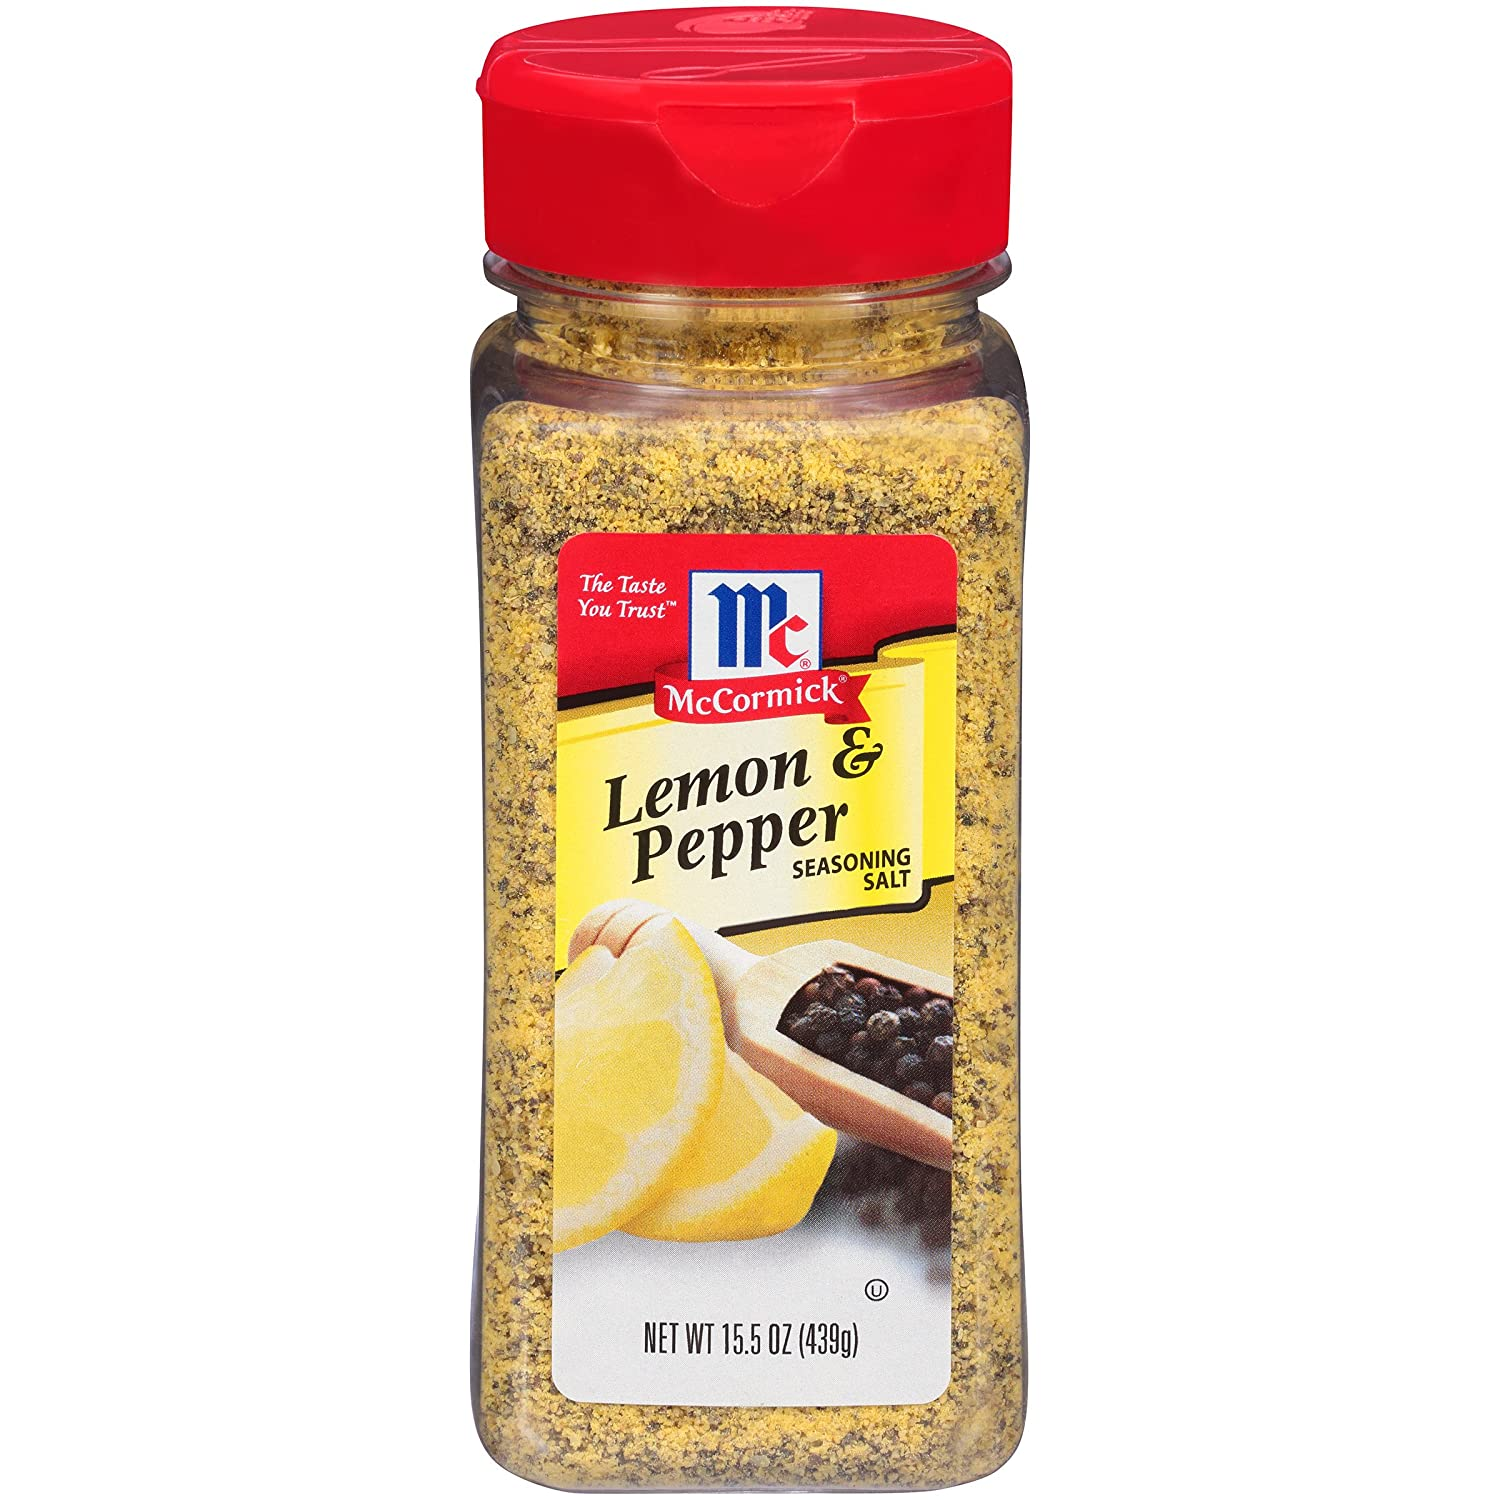 McCormick Perfect Pinch Lemon & Pepper Seasoning, 15.5 oz